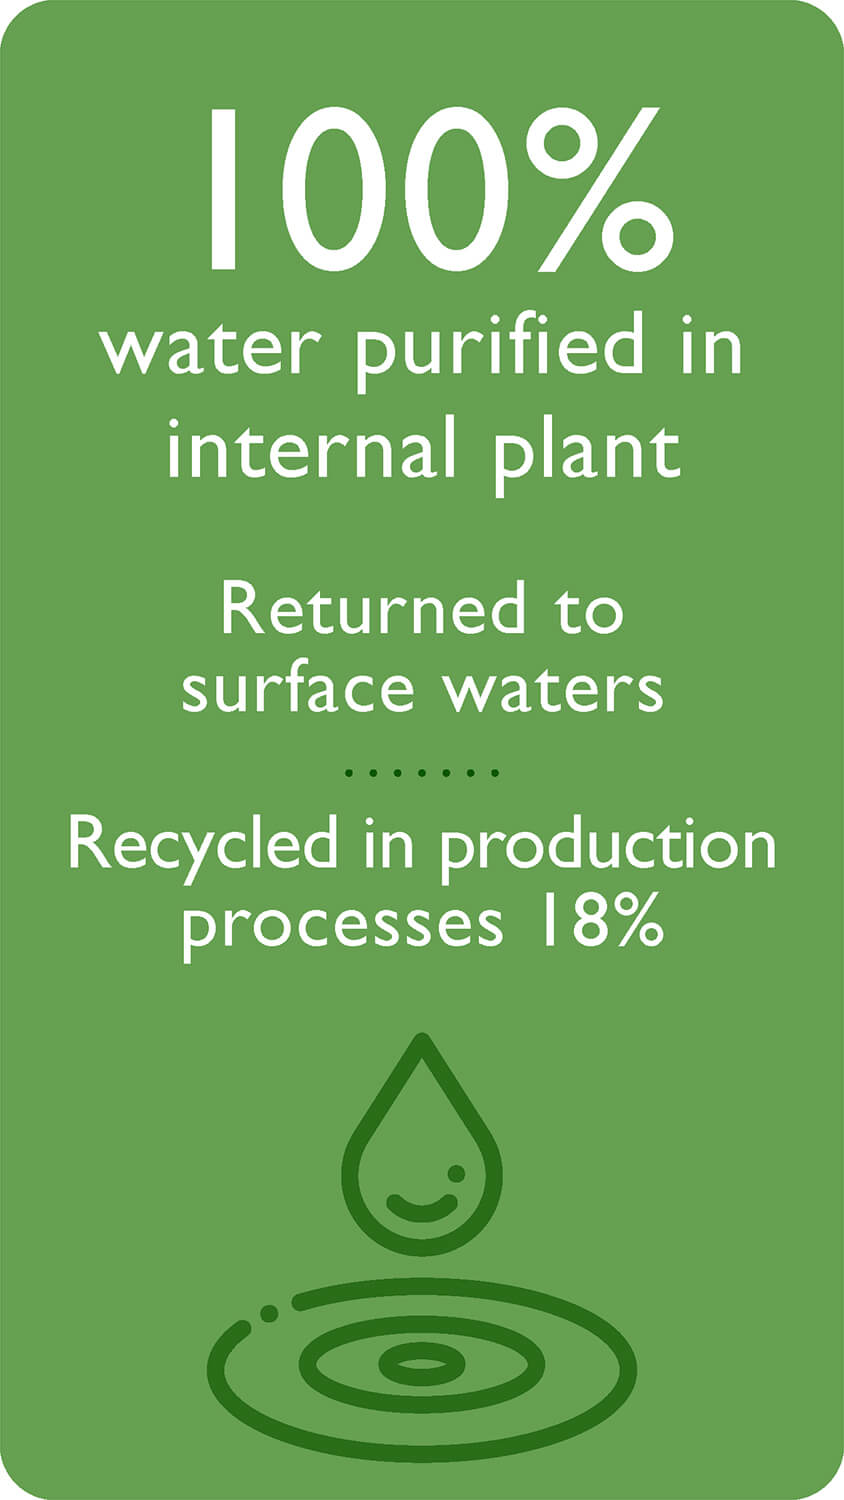 100% water purified in internal plant: returned to surface waters, recycled in production processes